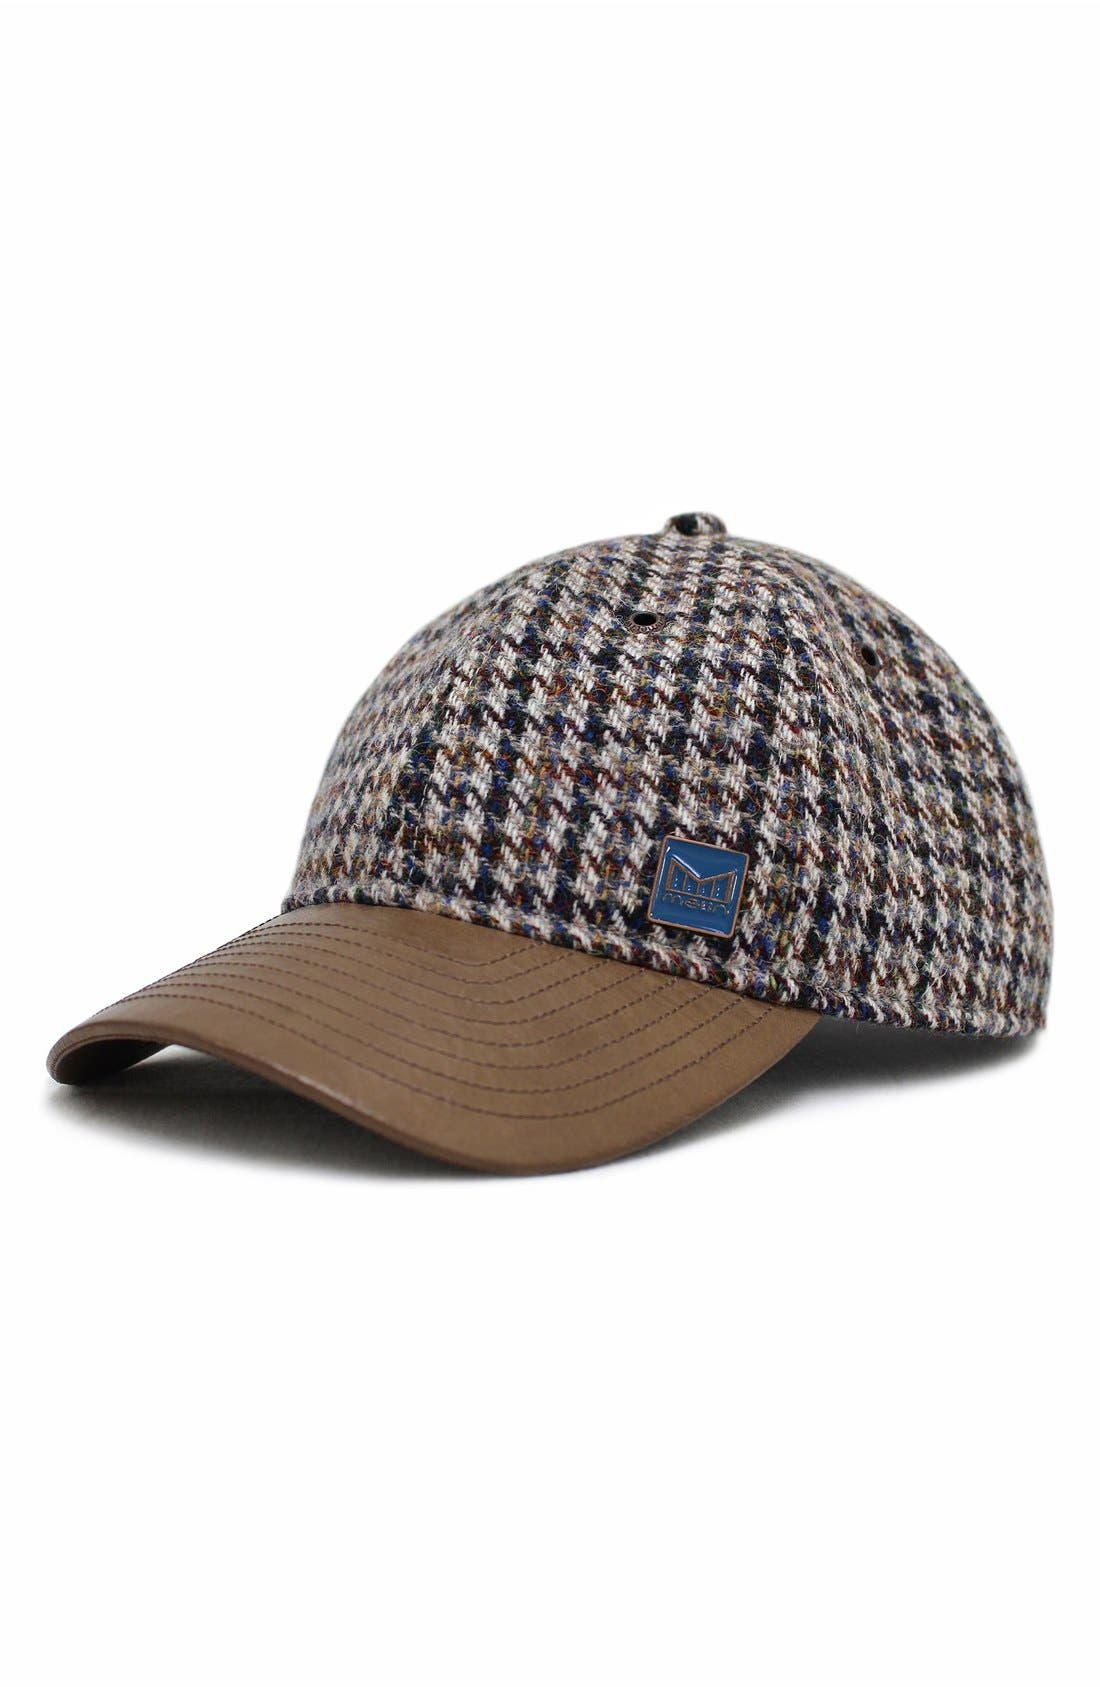 MELIN The Voyage Tweed & Leather Baseball Cap